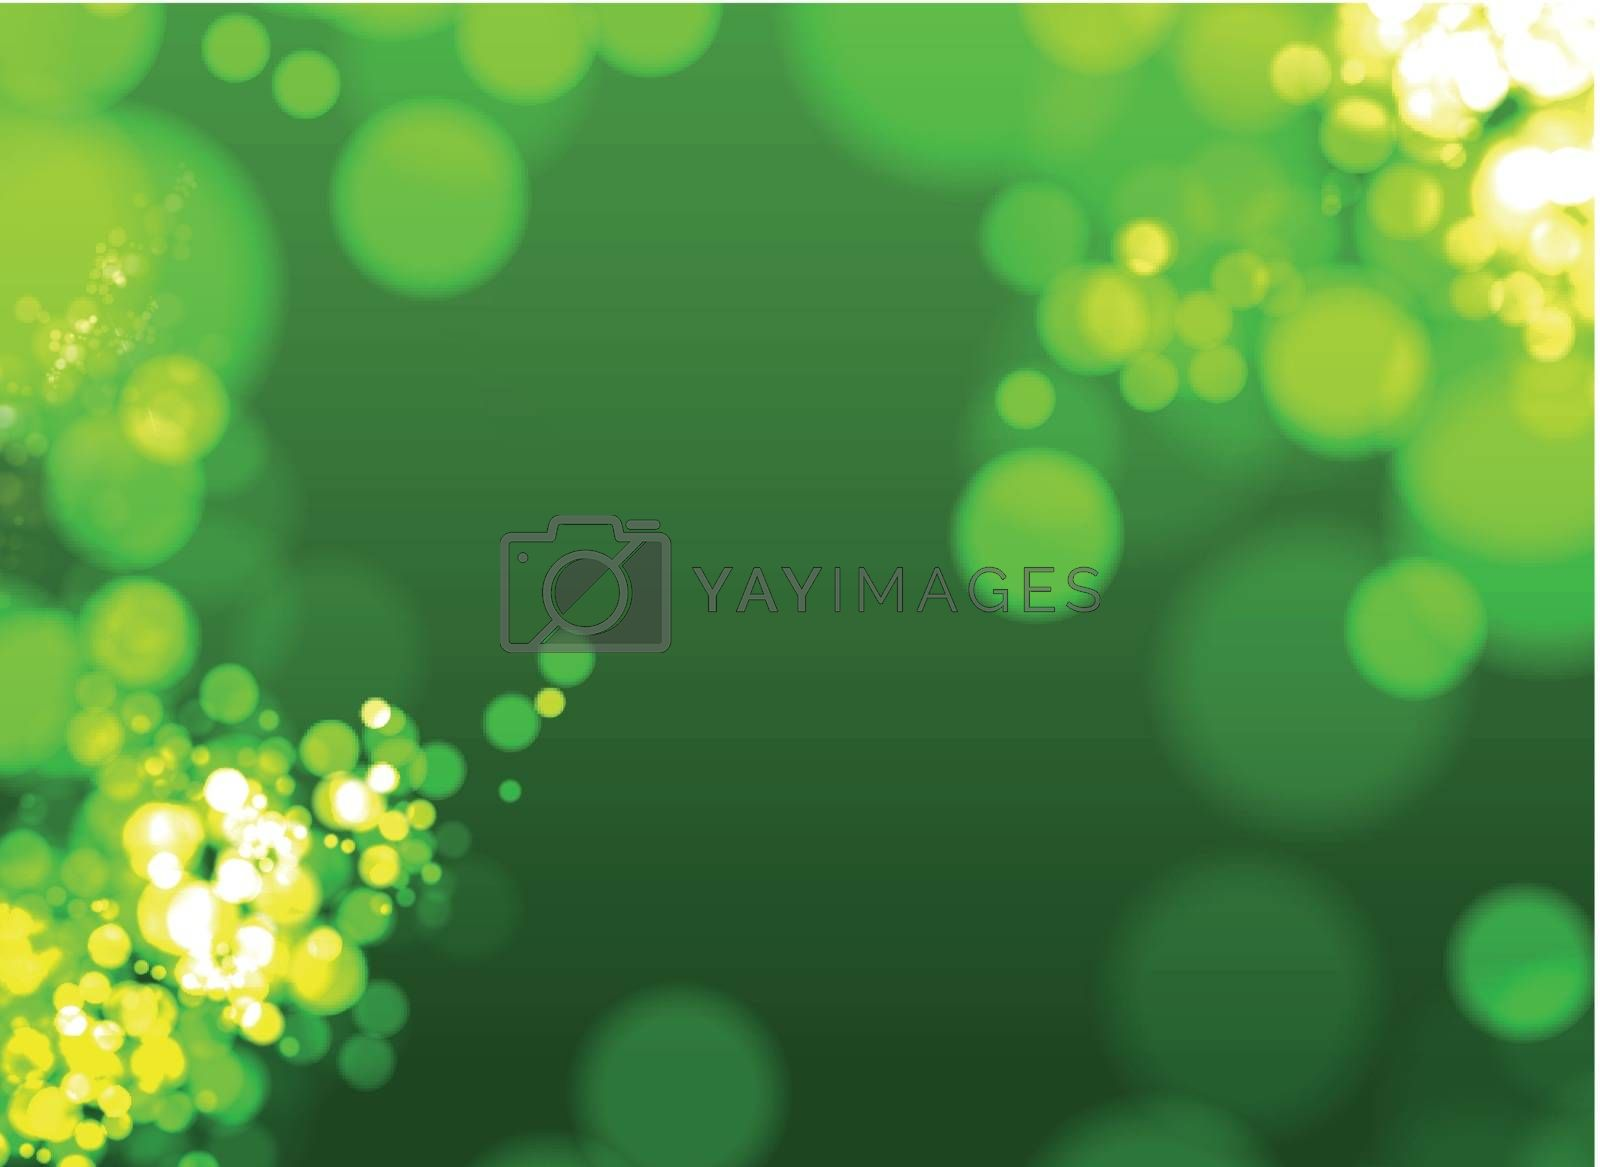 Green nature background with defocused lights - bokeh effect. Vector illustration